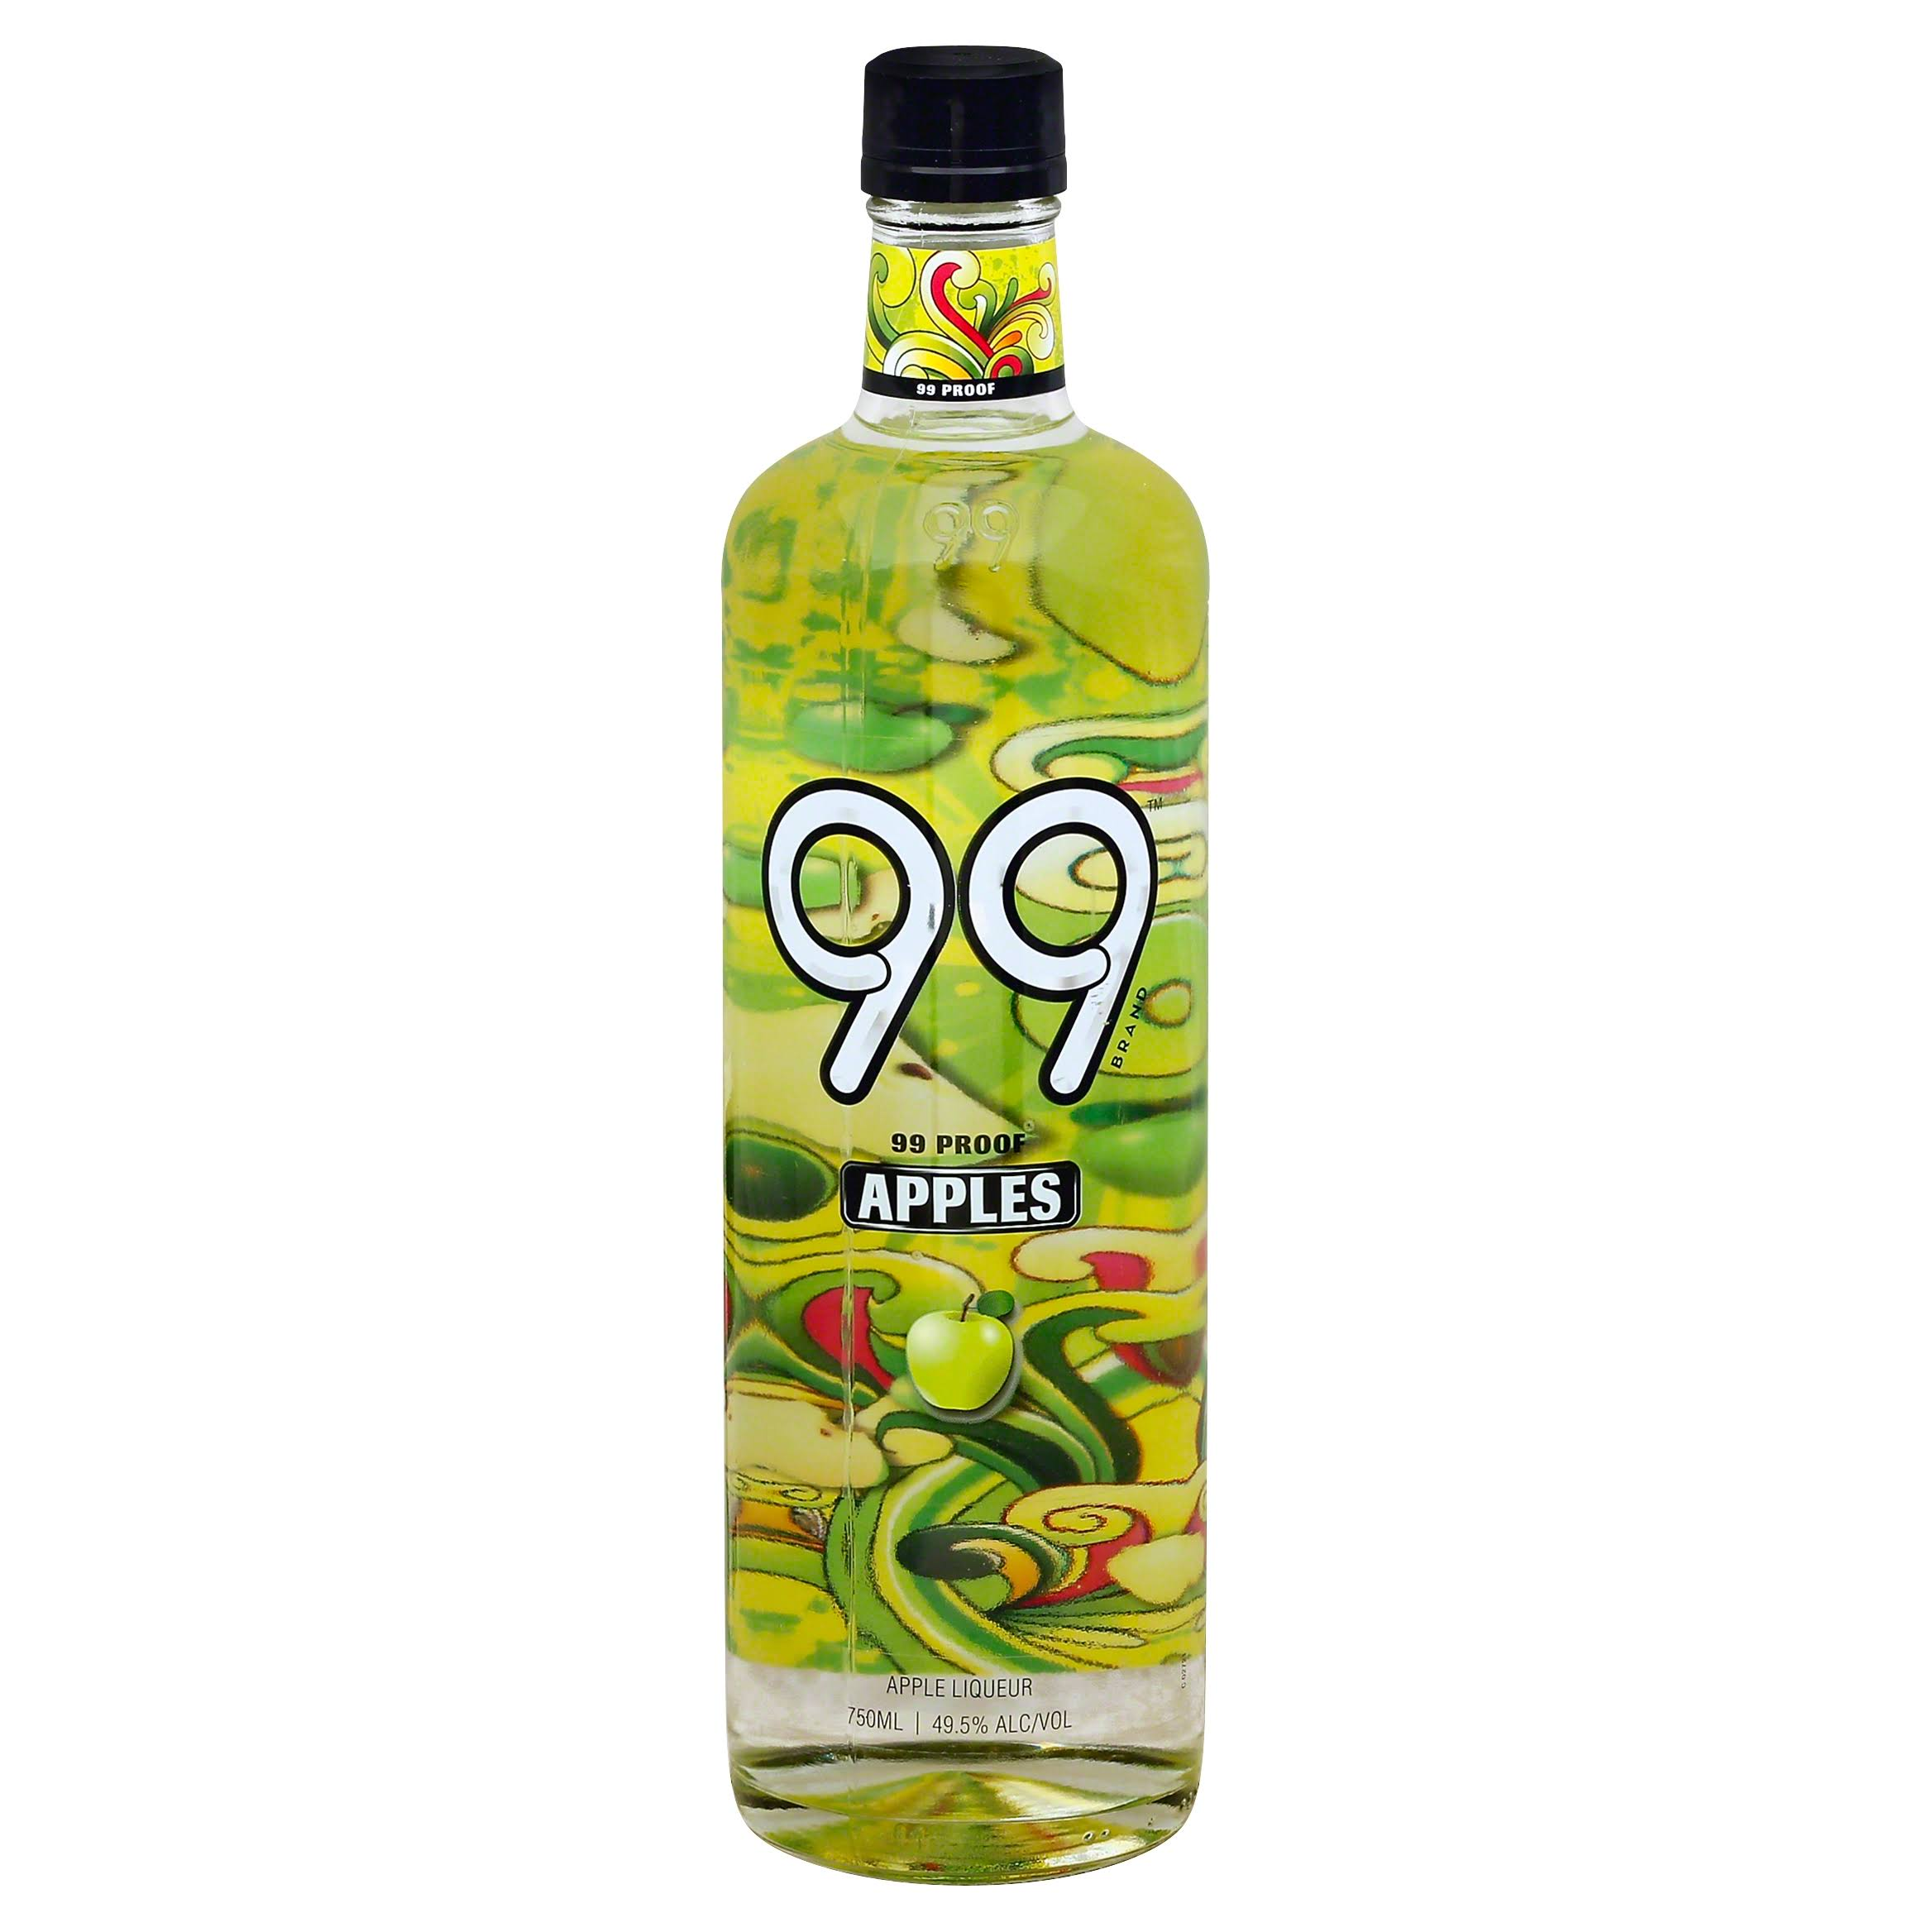 99 Apples Apple Schnapps - 750 ml bottle